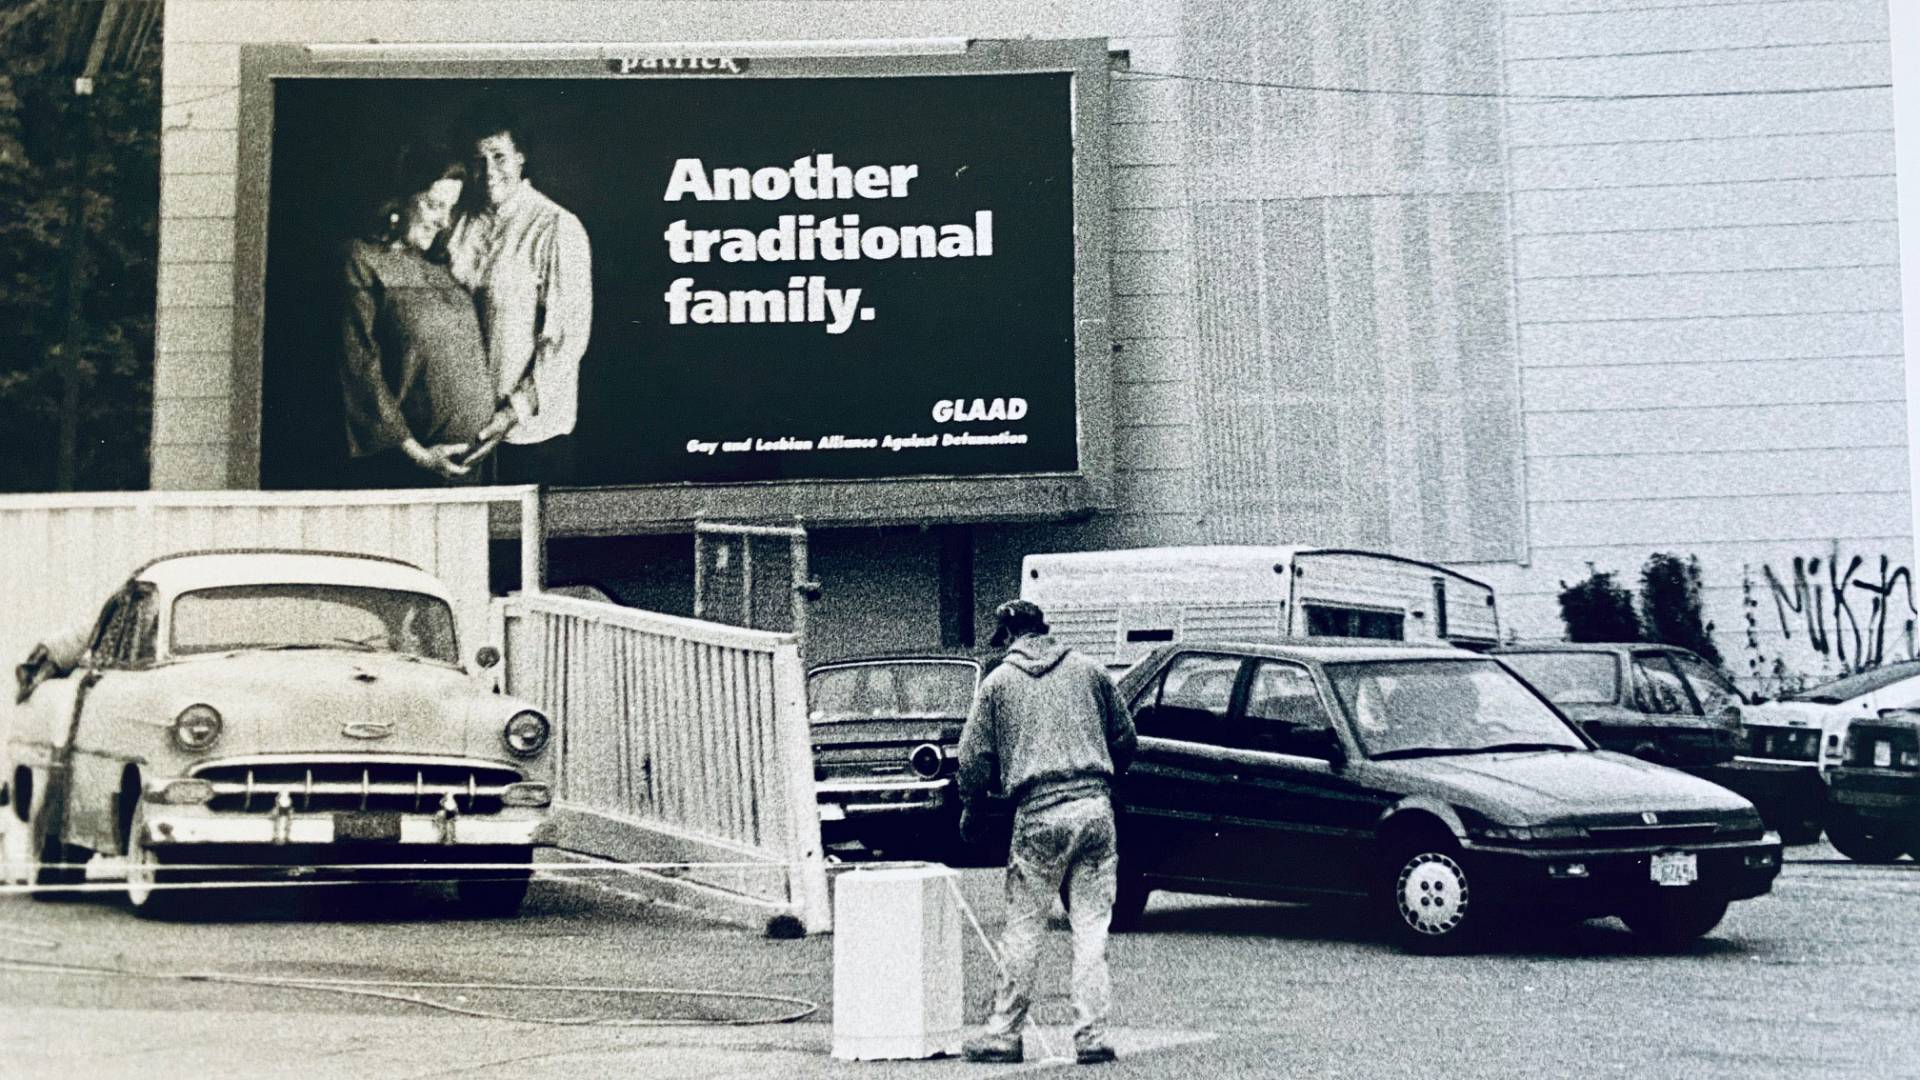 The billboard, photographed by Chloe Atkins and featuring Pat and Karen Norman, on the side of a building in 1992. Courtesy Chloe Atkins